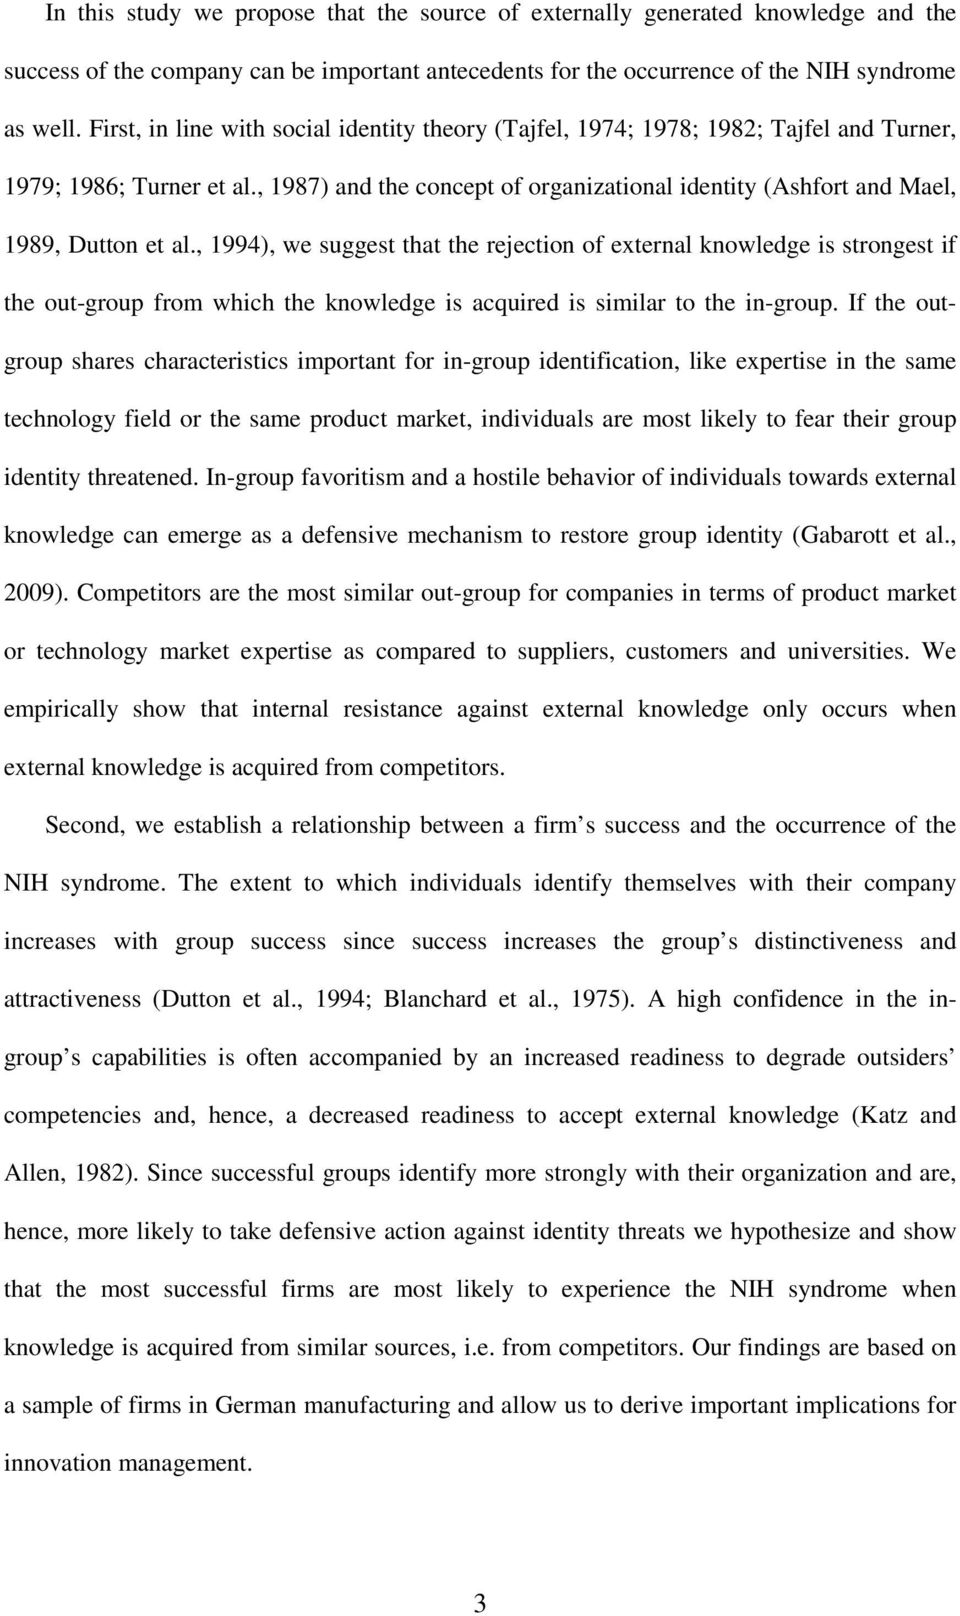 , 1987) and the concept of organizational identity (Ashfort and Mael, 1989, Dutton et al.